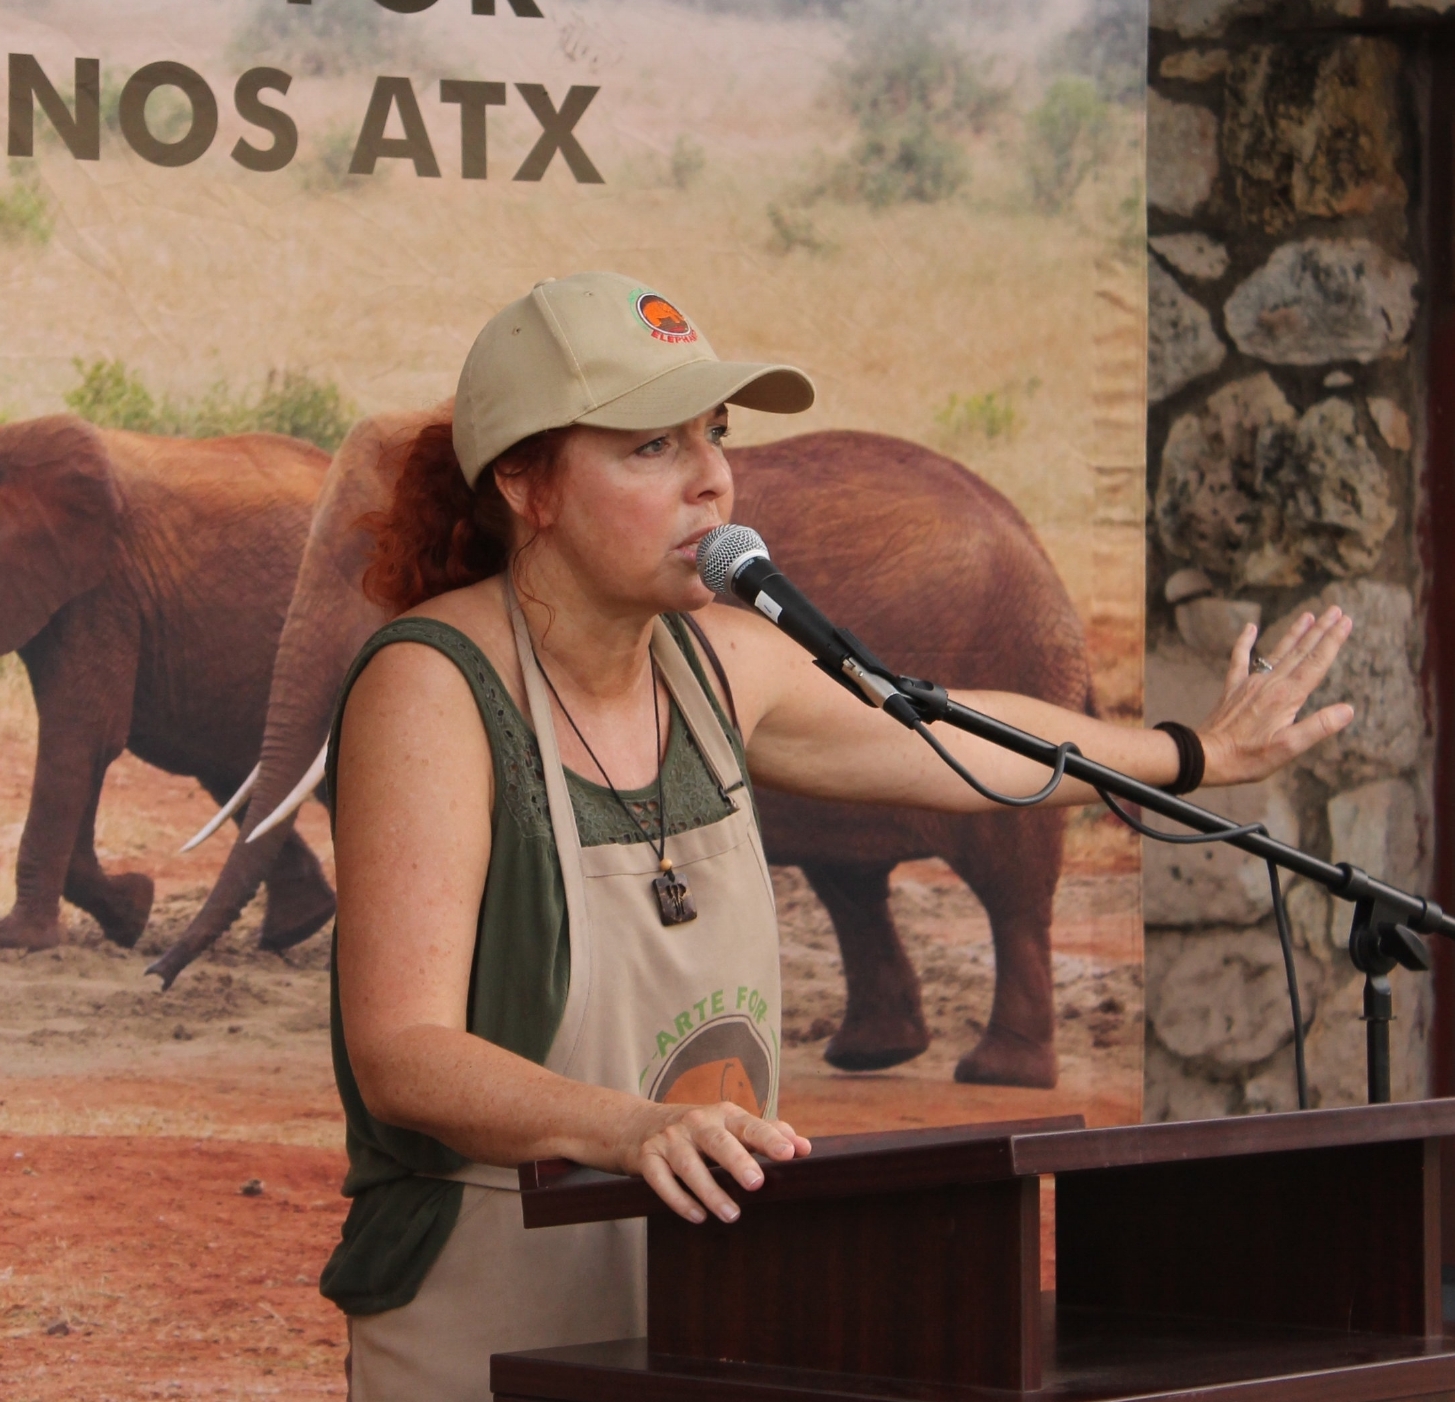 Thyra Rutter raises funds for Elephant charities in Africa and India and helps raise awareness about the crisis wherever she goes.